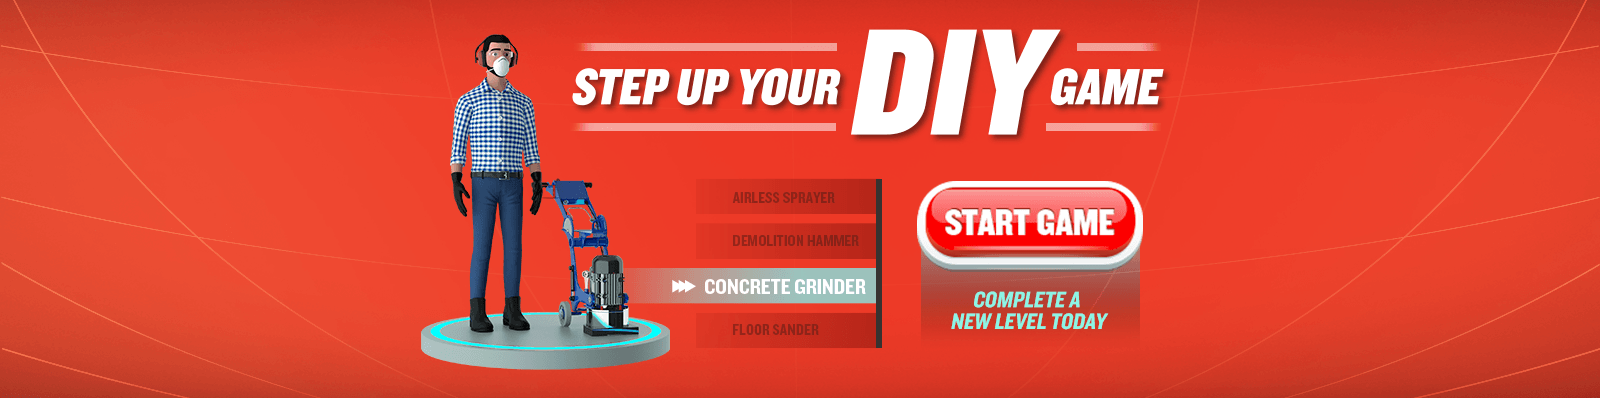 Get your DIY game on